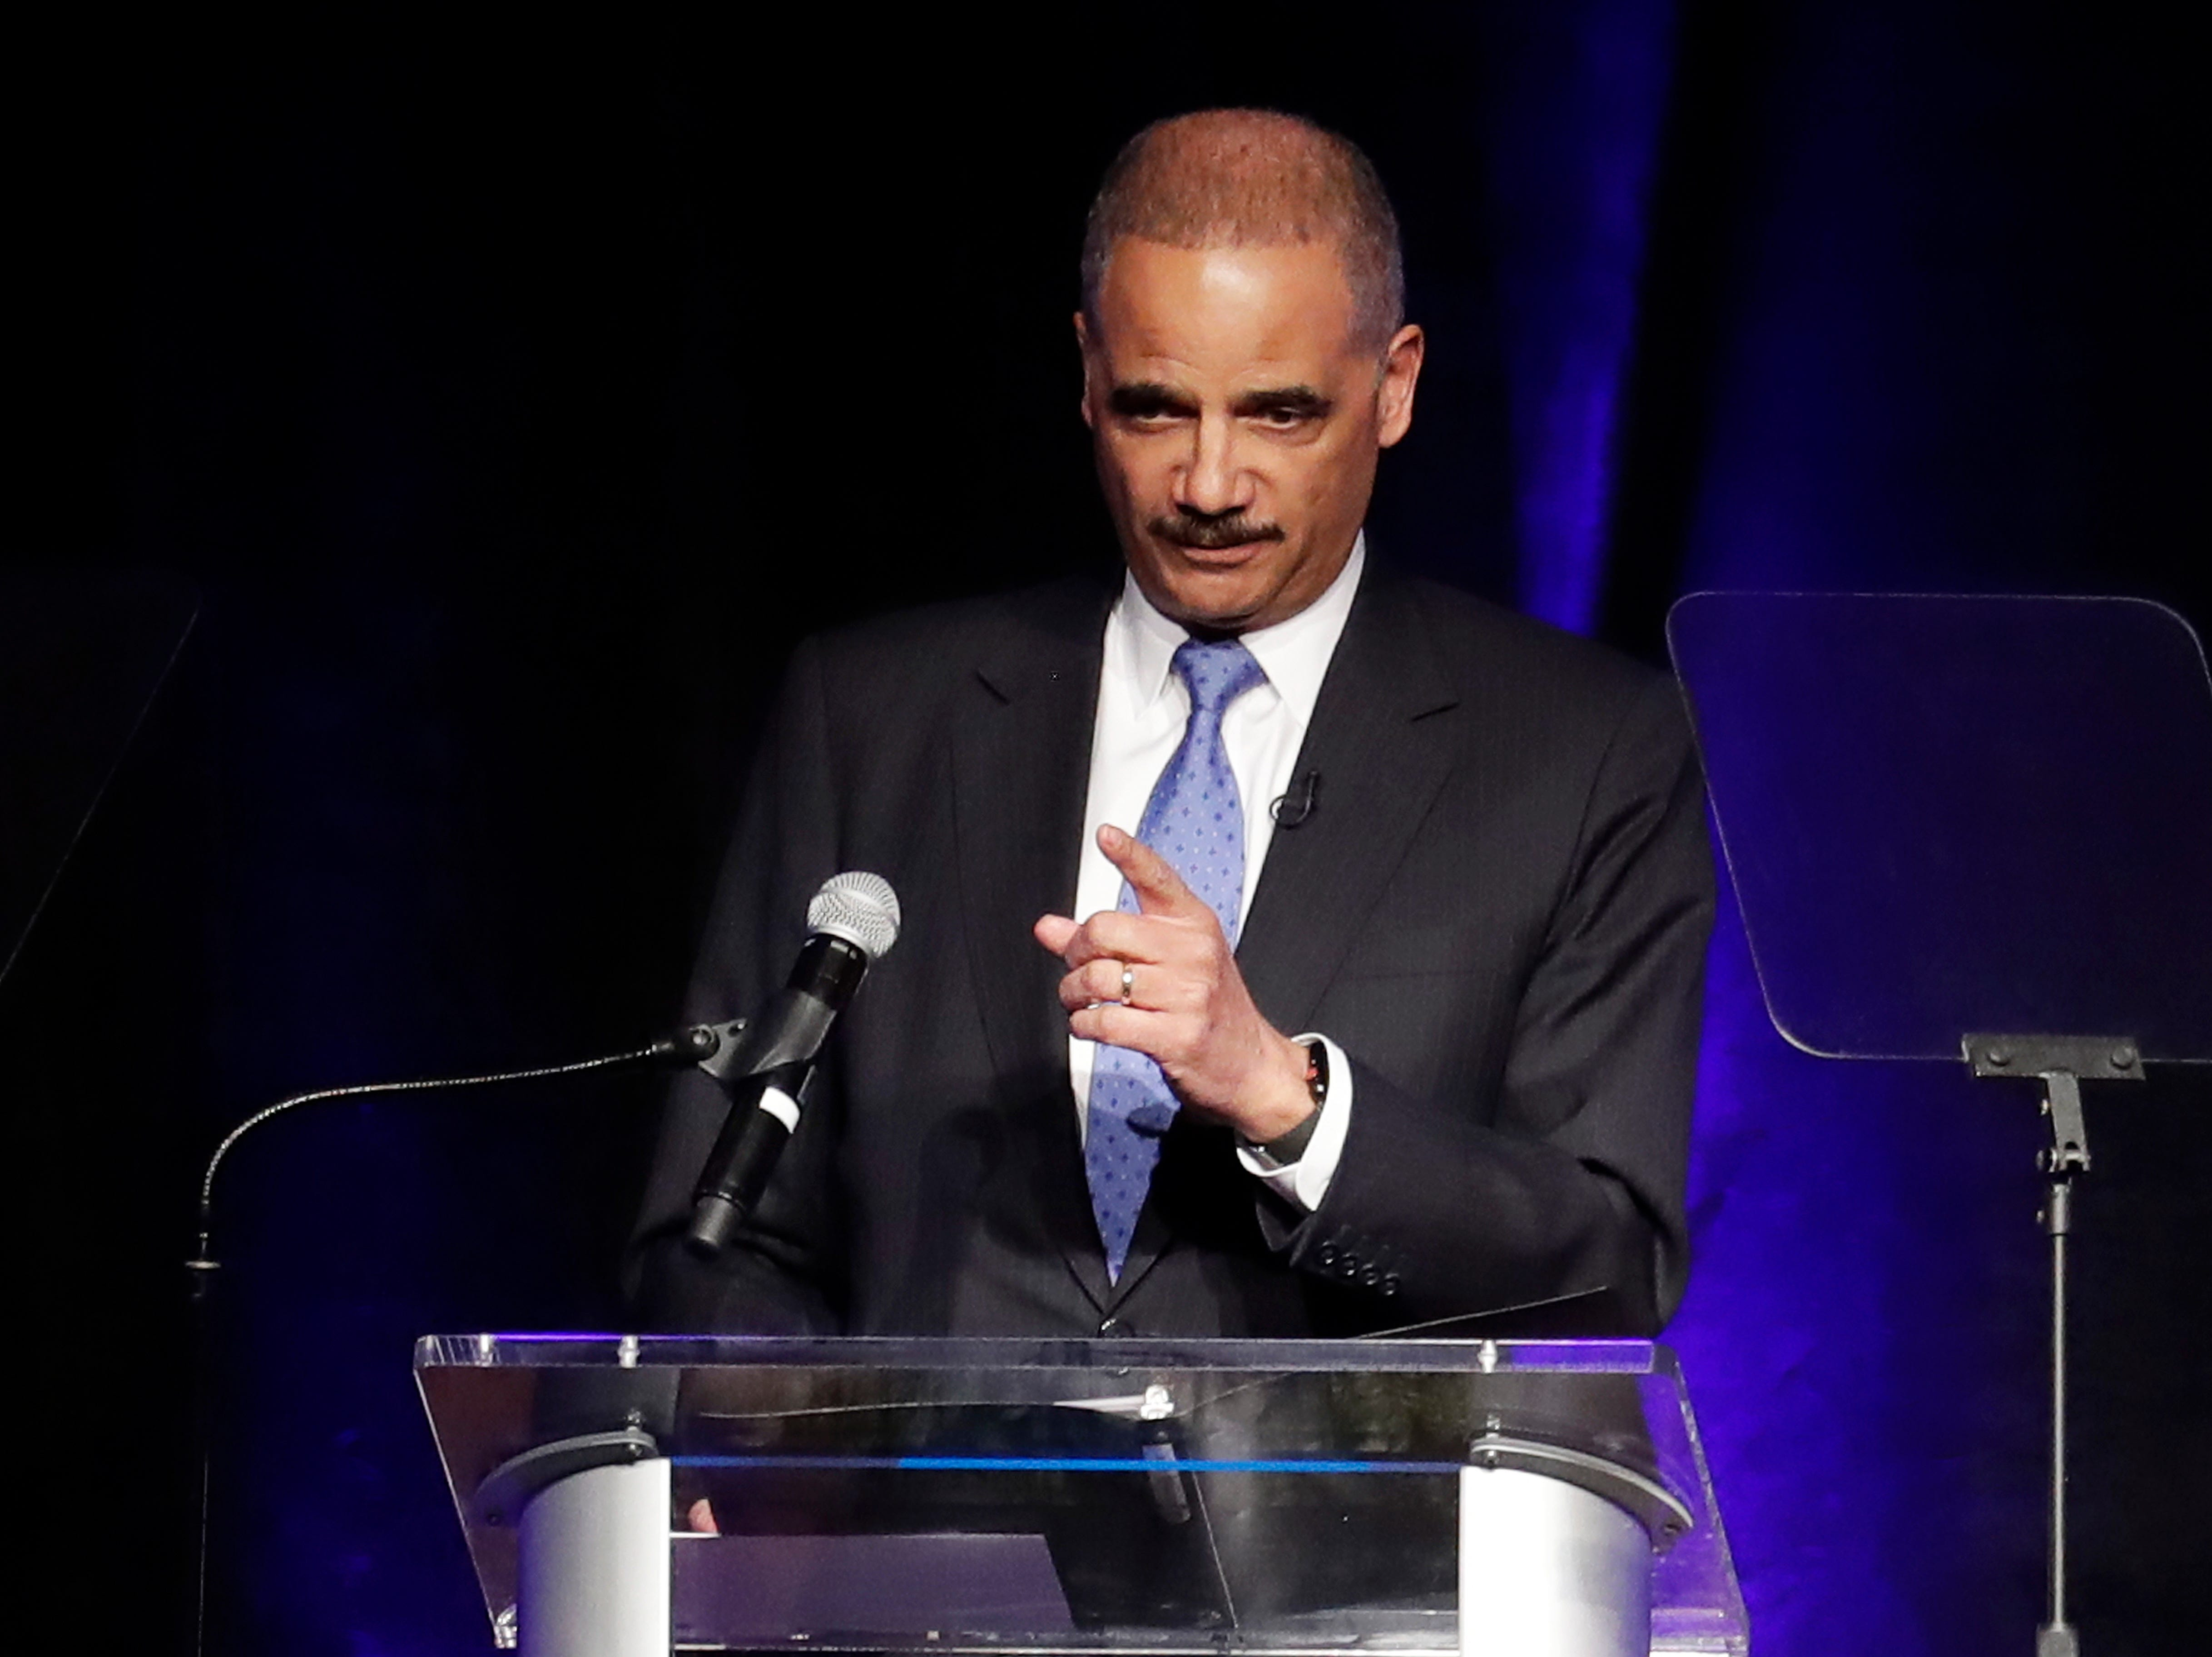 Former Attorney General Eric Holder speaks at the Peabody Hotel on April 2, 2018. Holder's speech is part of the University of Memphis Law Symposium in commemoration of the 50th anniversary of the assassination of Rev. Martin Luther King Jr.